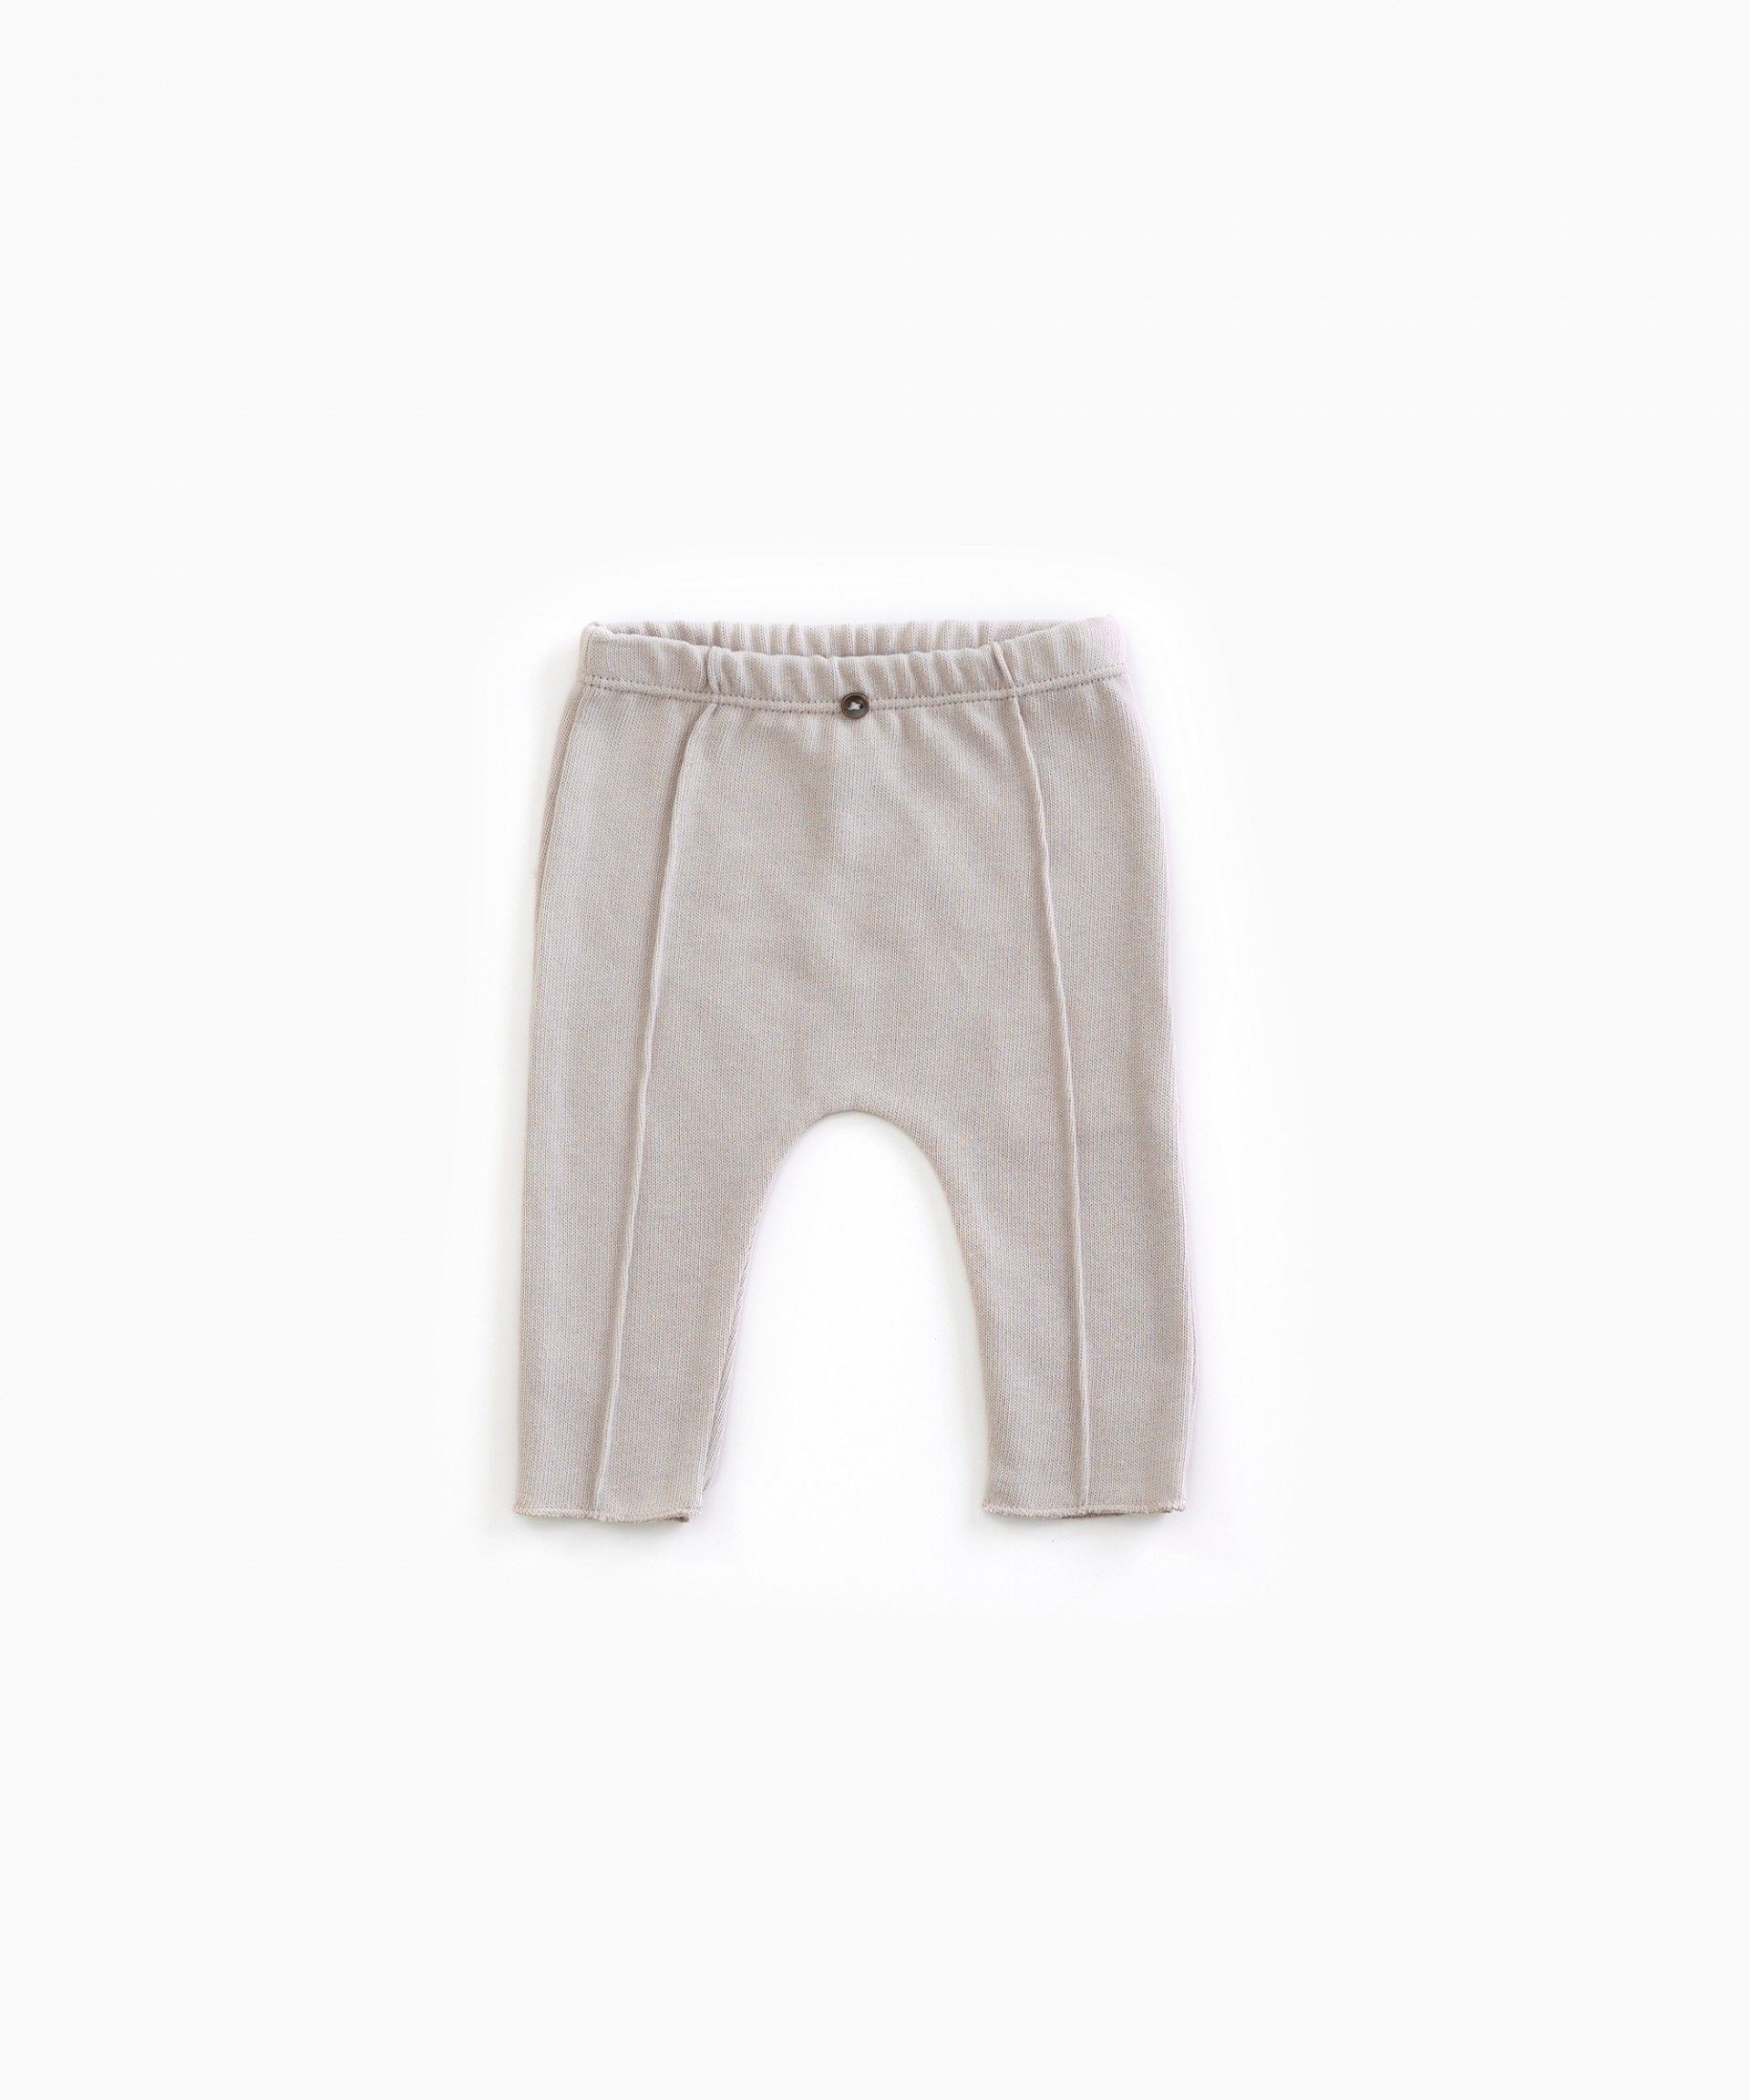 Trousers in organic cotton | Woodwork